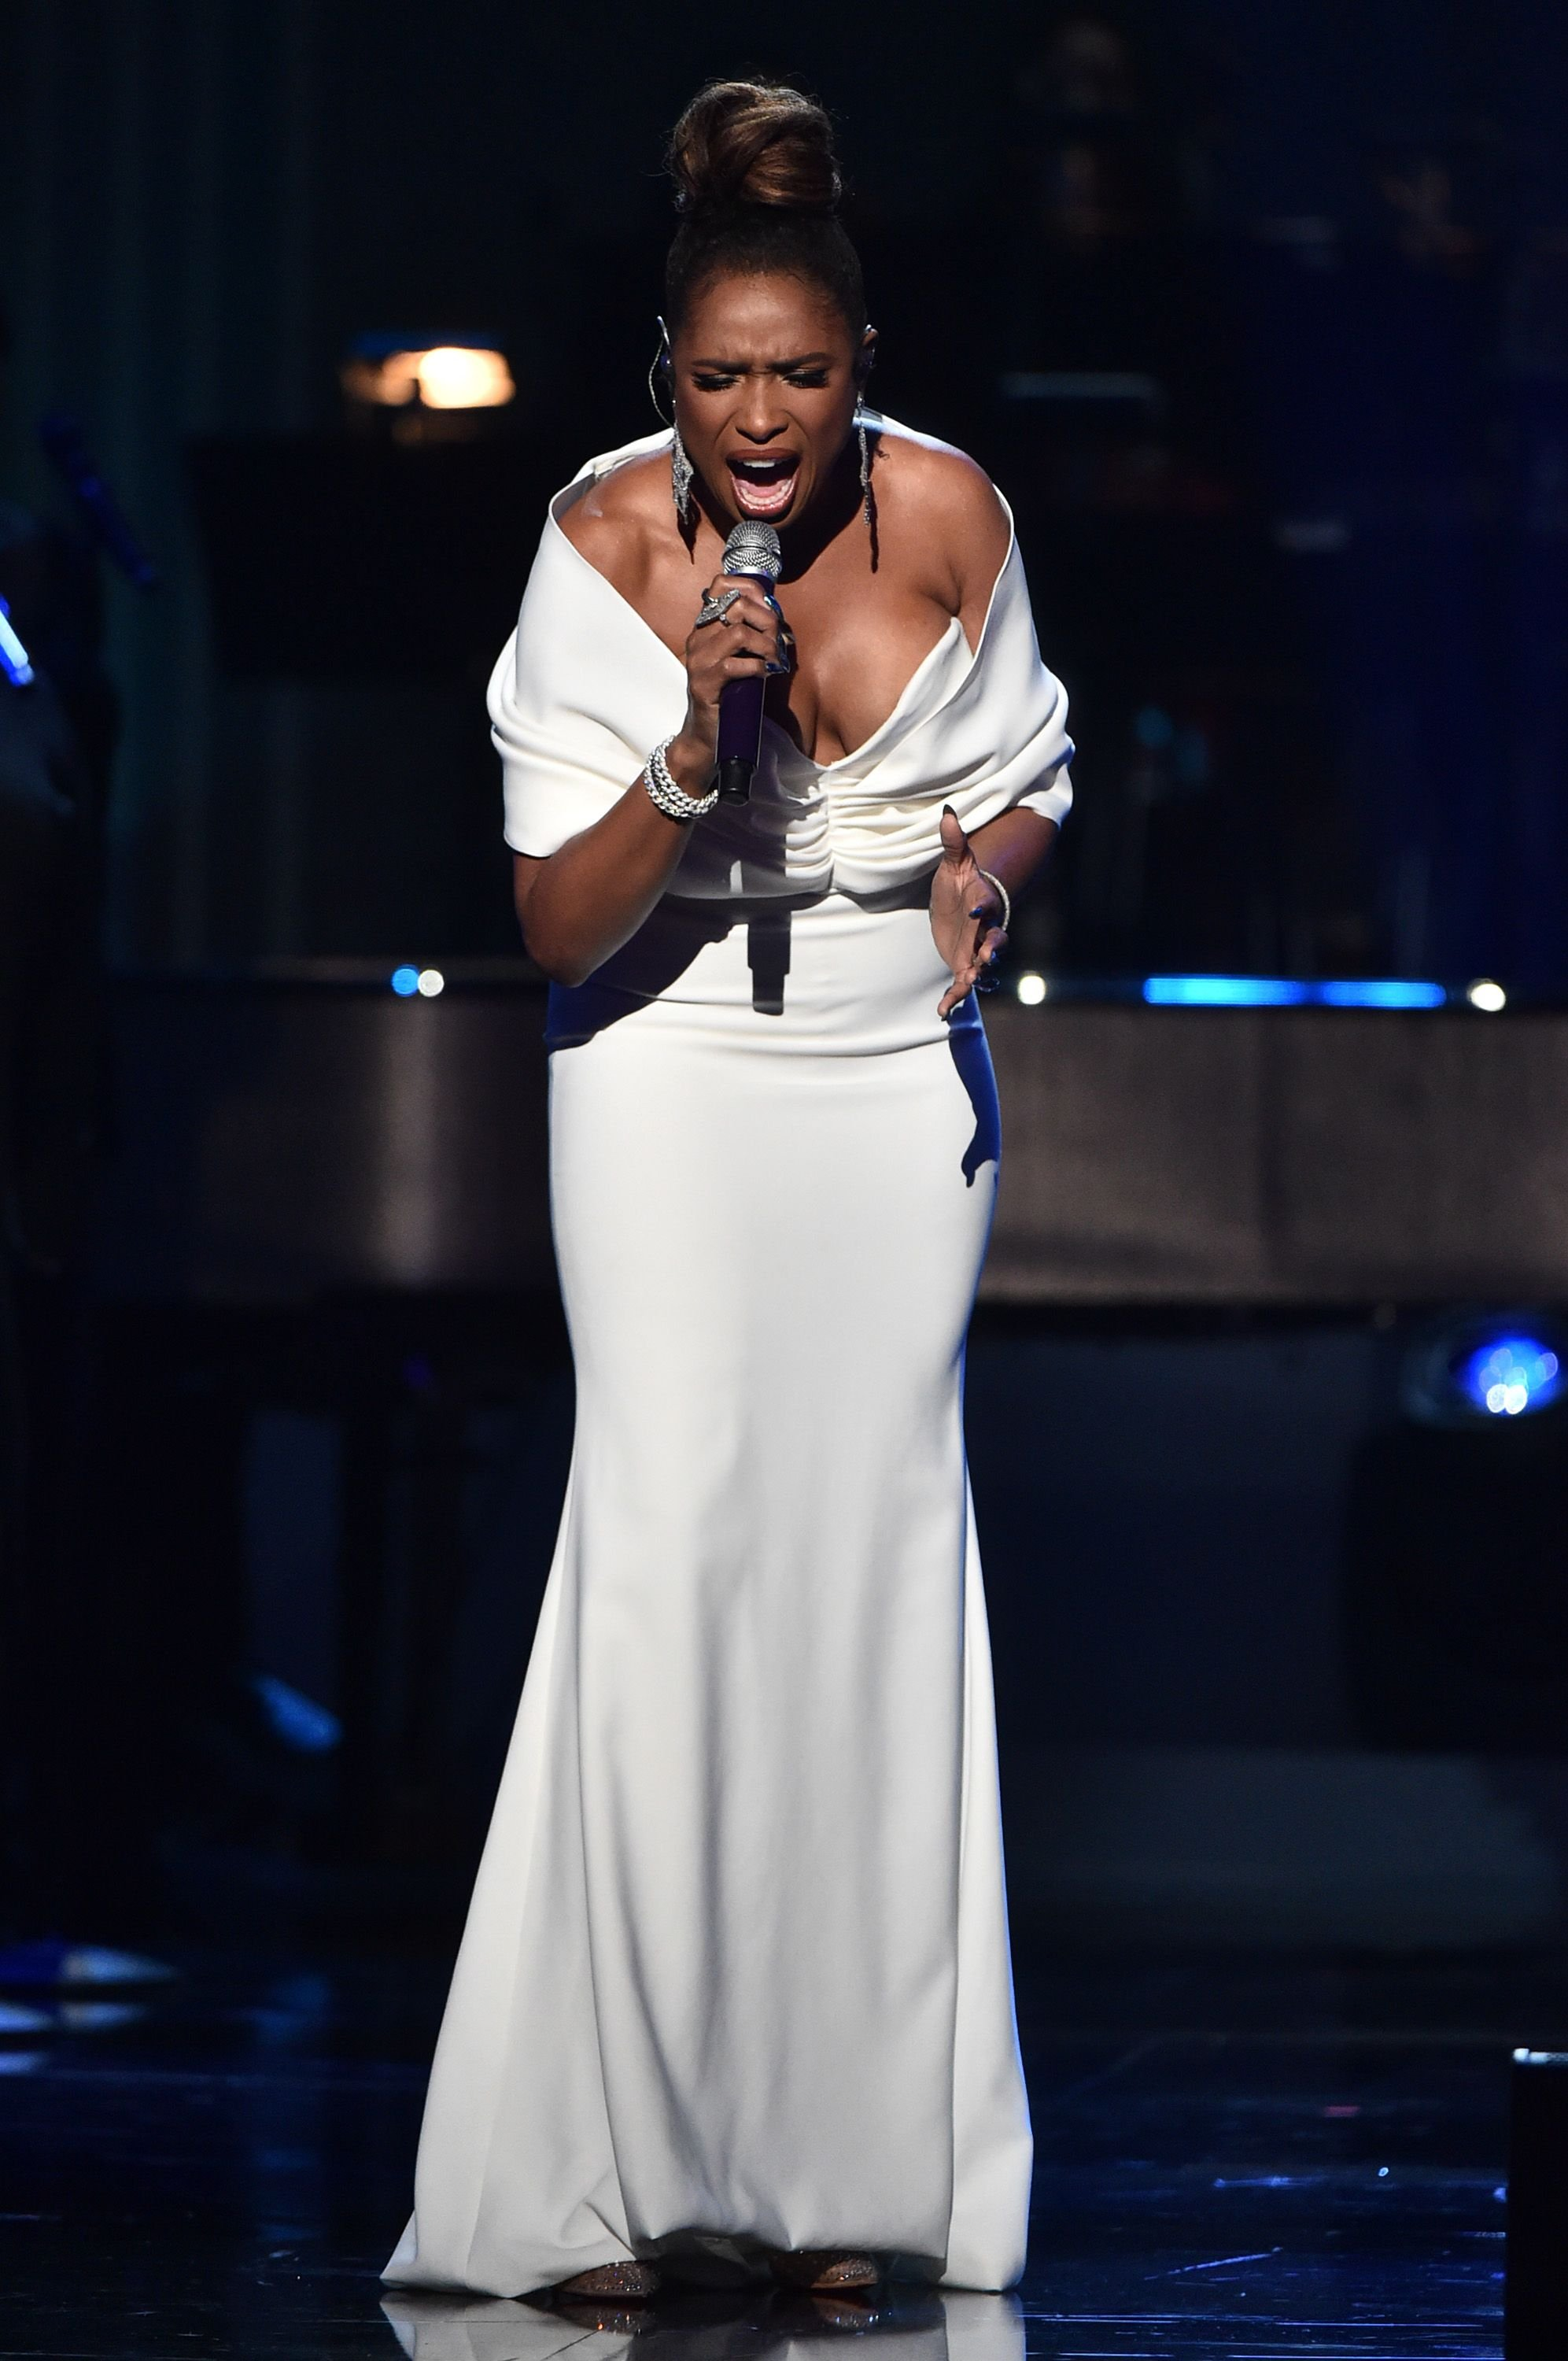 """Jennifer Hudson singing at """"Aretha! A GrammyCelebration For The Queen Of Soul"""" at The Shrine Auditorium on January 13, 2019 in Los Angeles, California.   Source: Getty Images"""